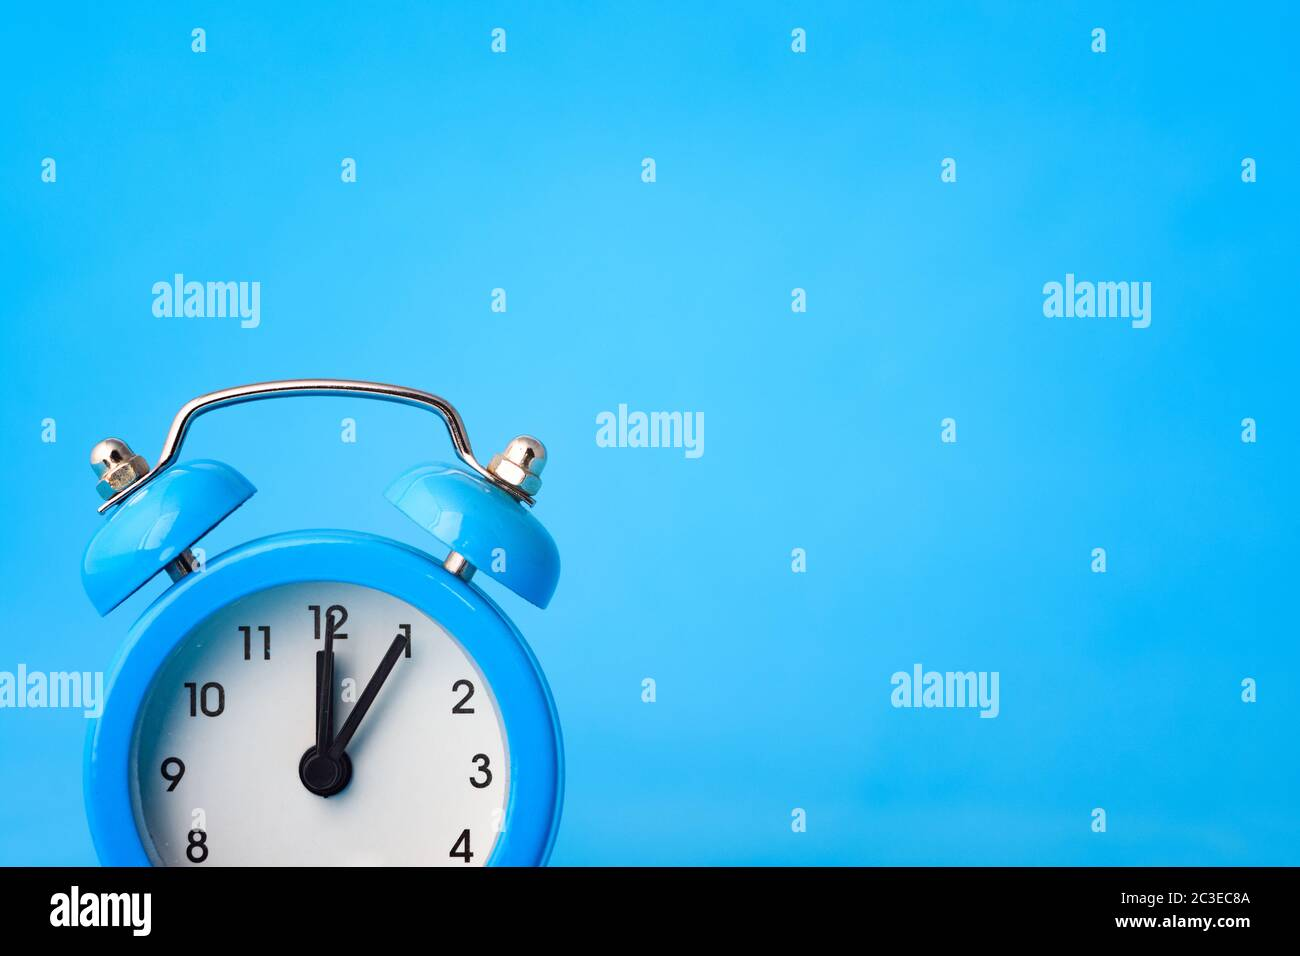 Clock concept - time, right empty place, blue background Stock Photo